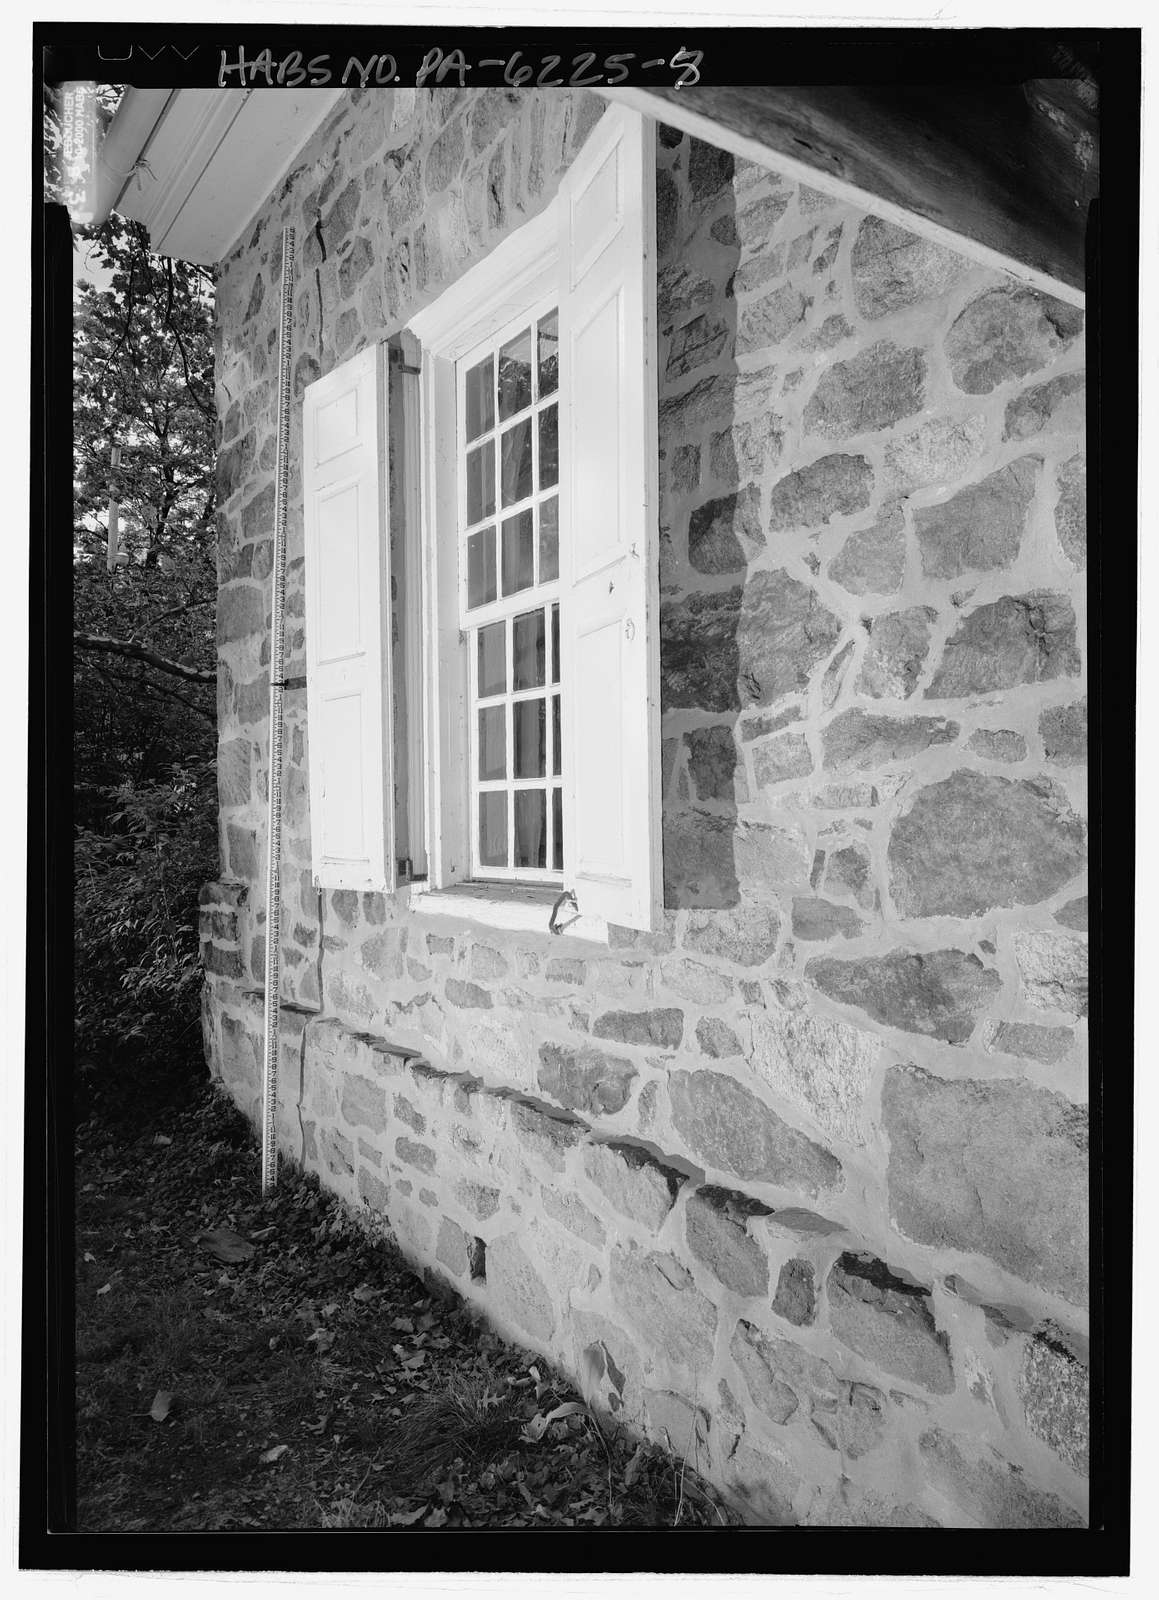 Chichester Friends Meeting House, 611 Meetinghouse Road, Boothwyn, Delaware County, PA